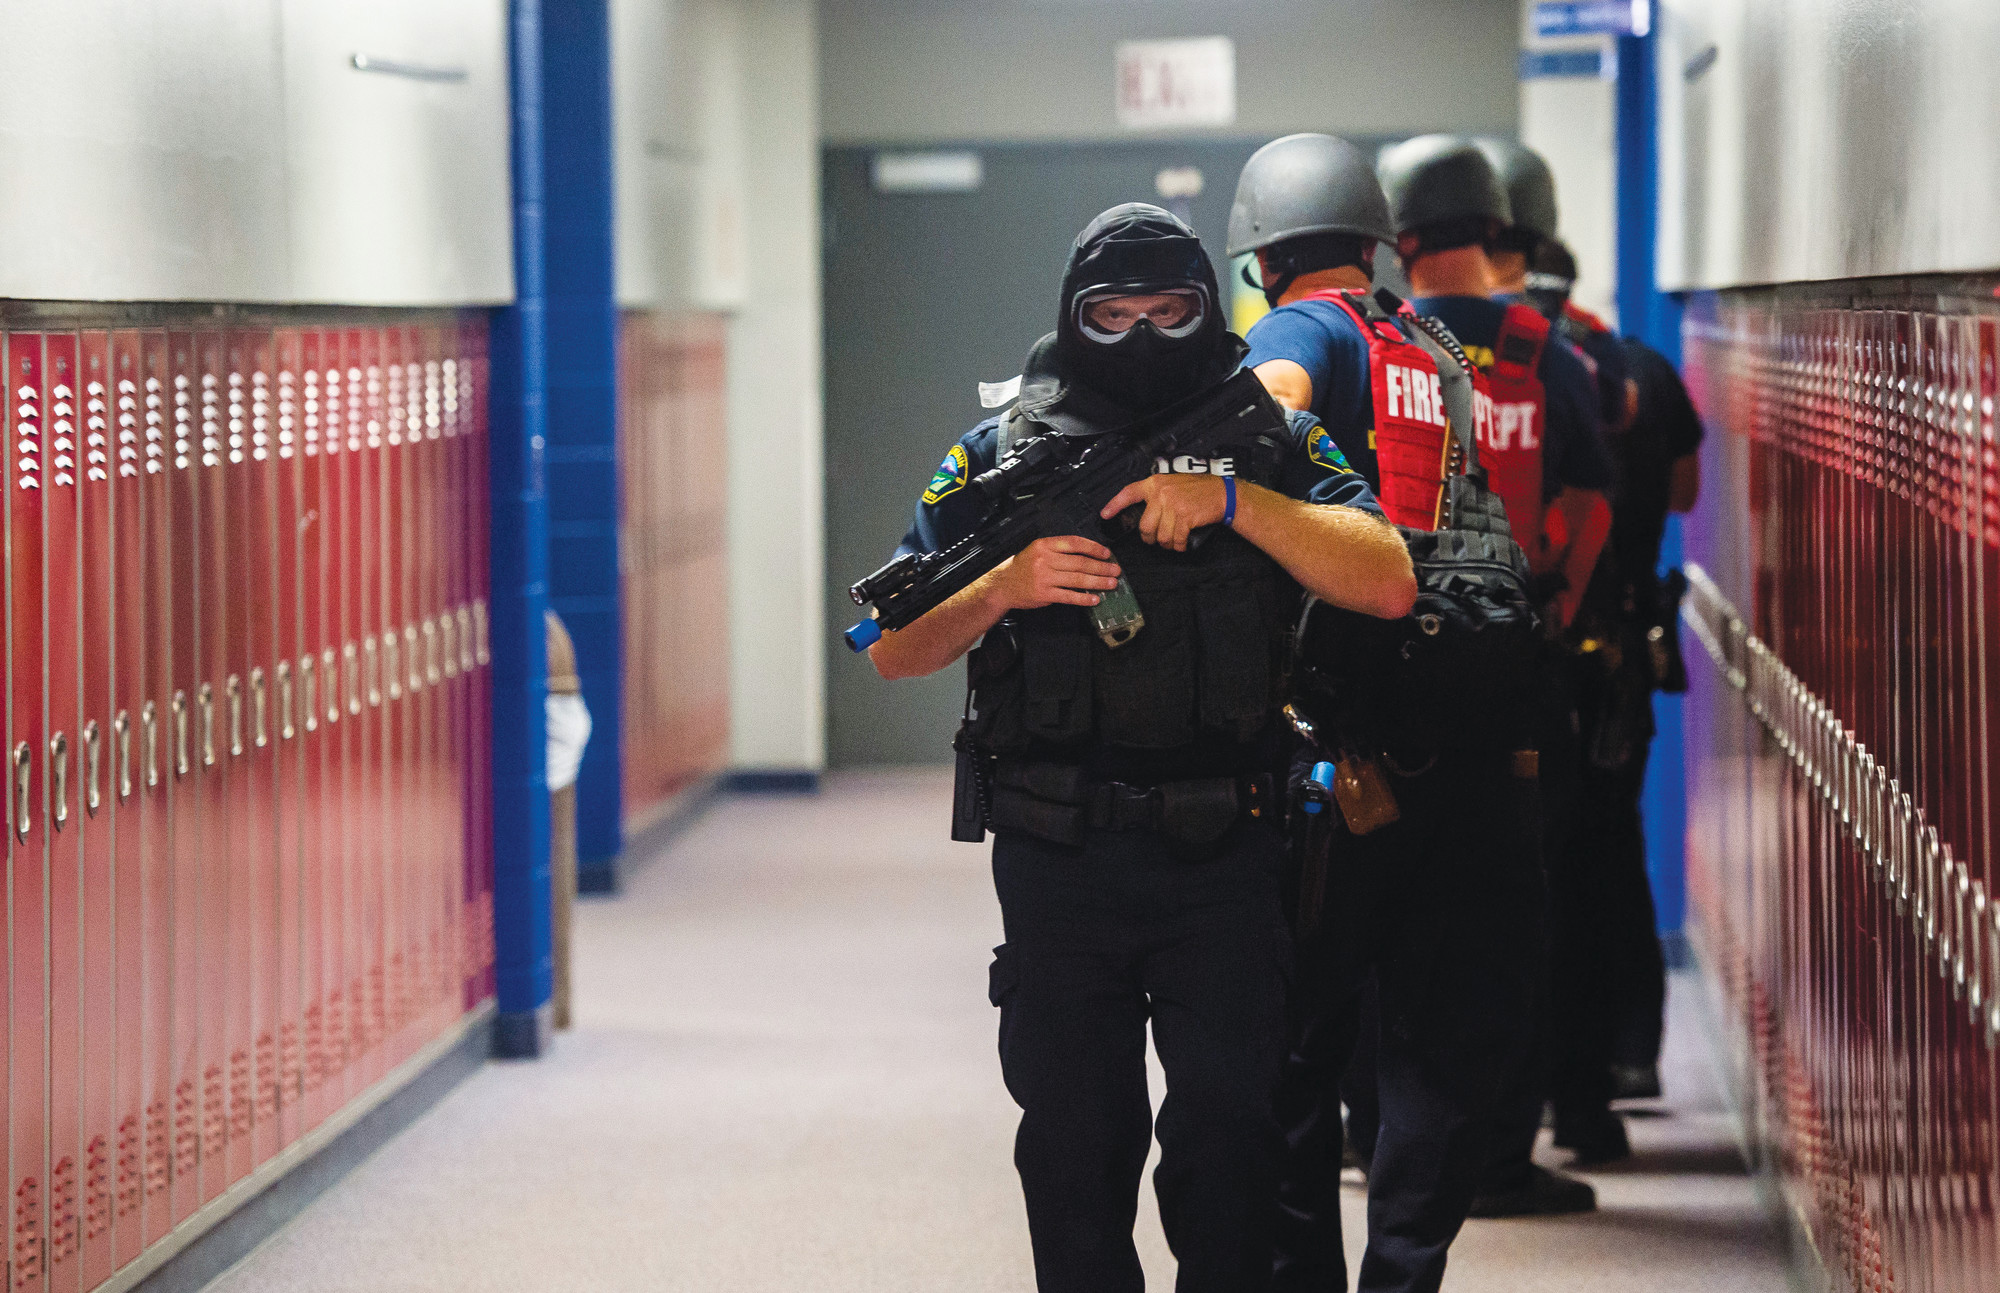 How to Survive an Active Shooter?